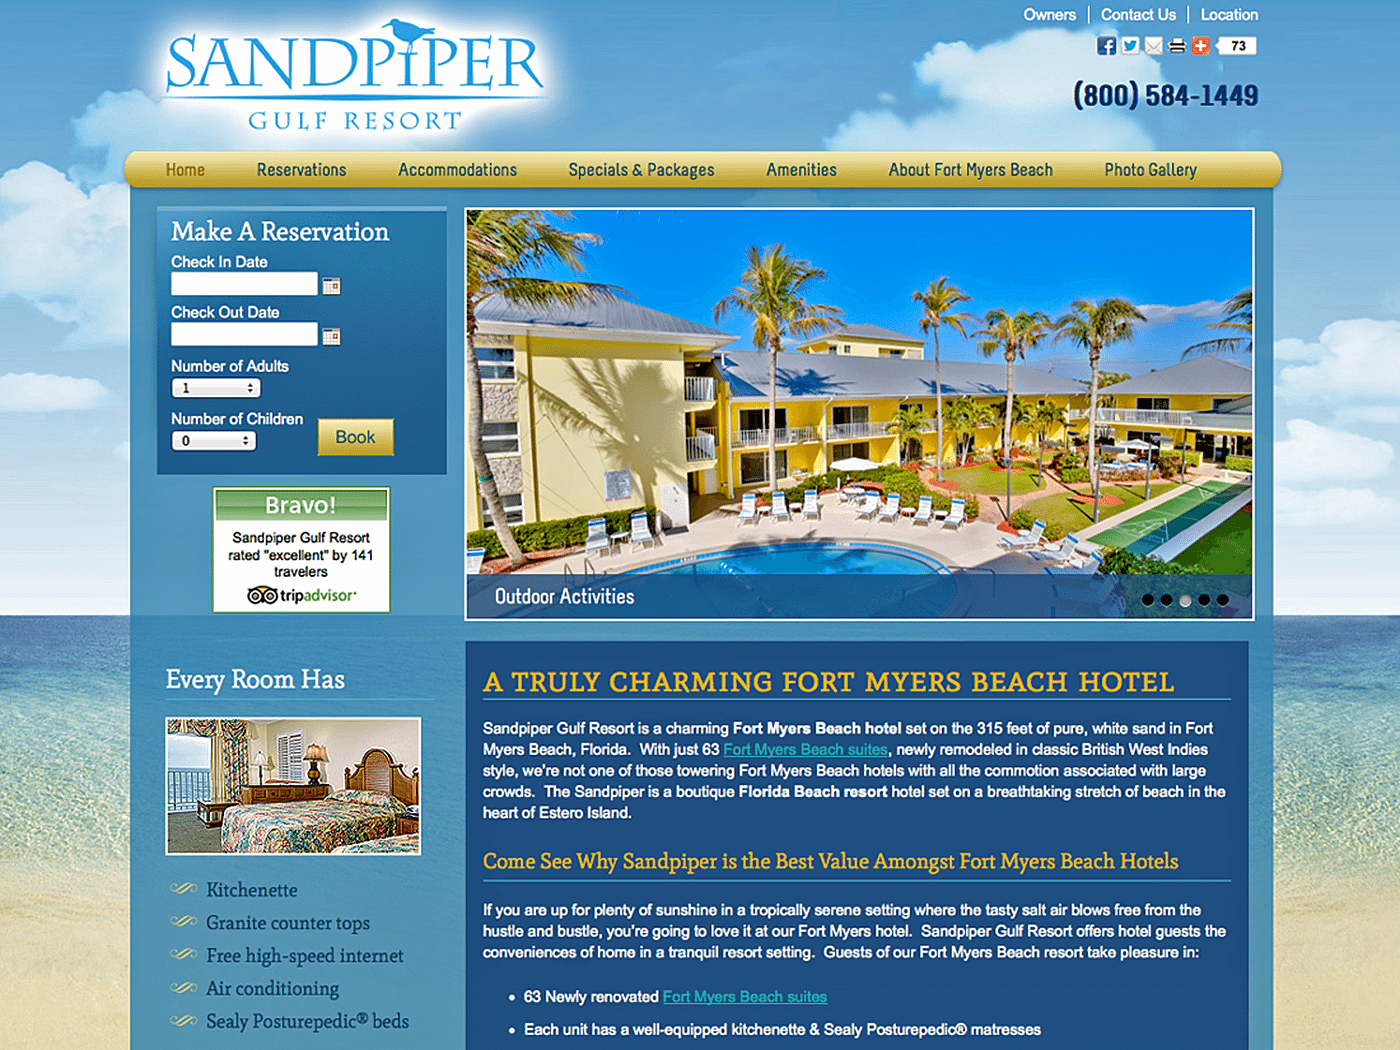 Hotel Website Design Agency Creative | SandPiper Gulf Resort